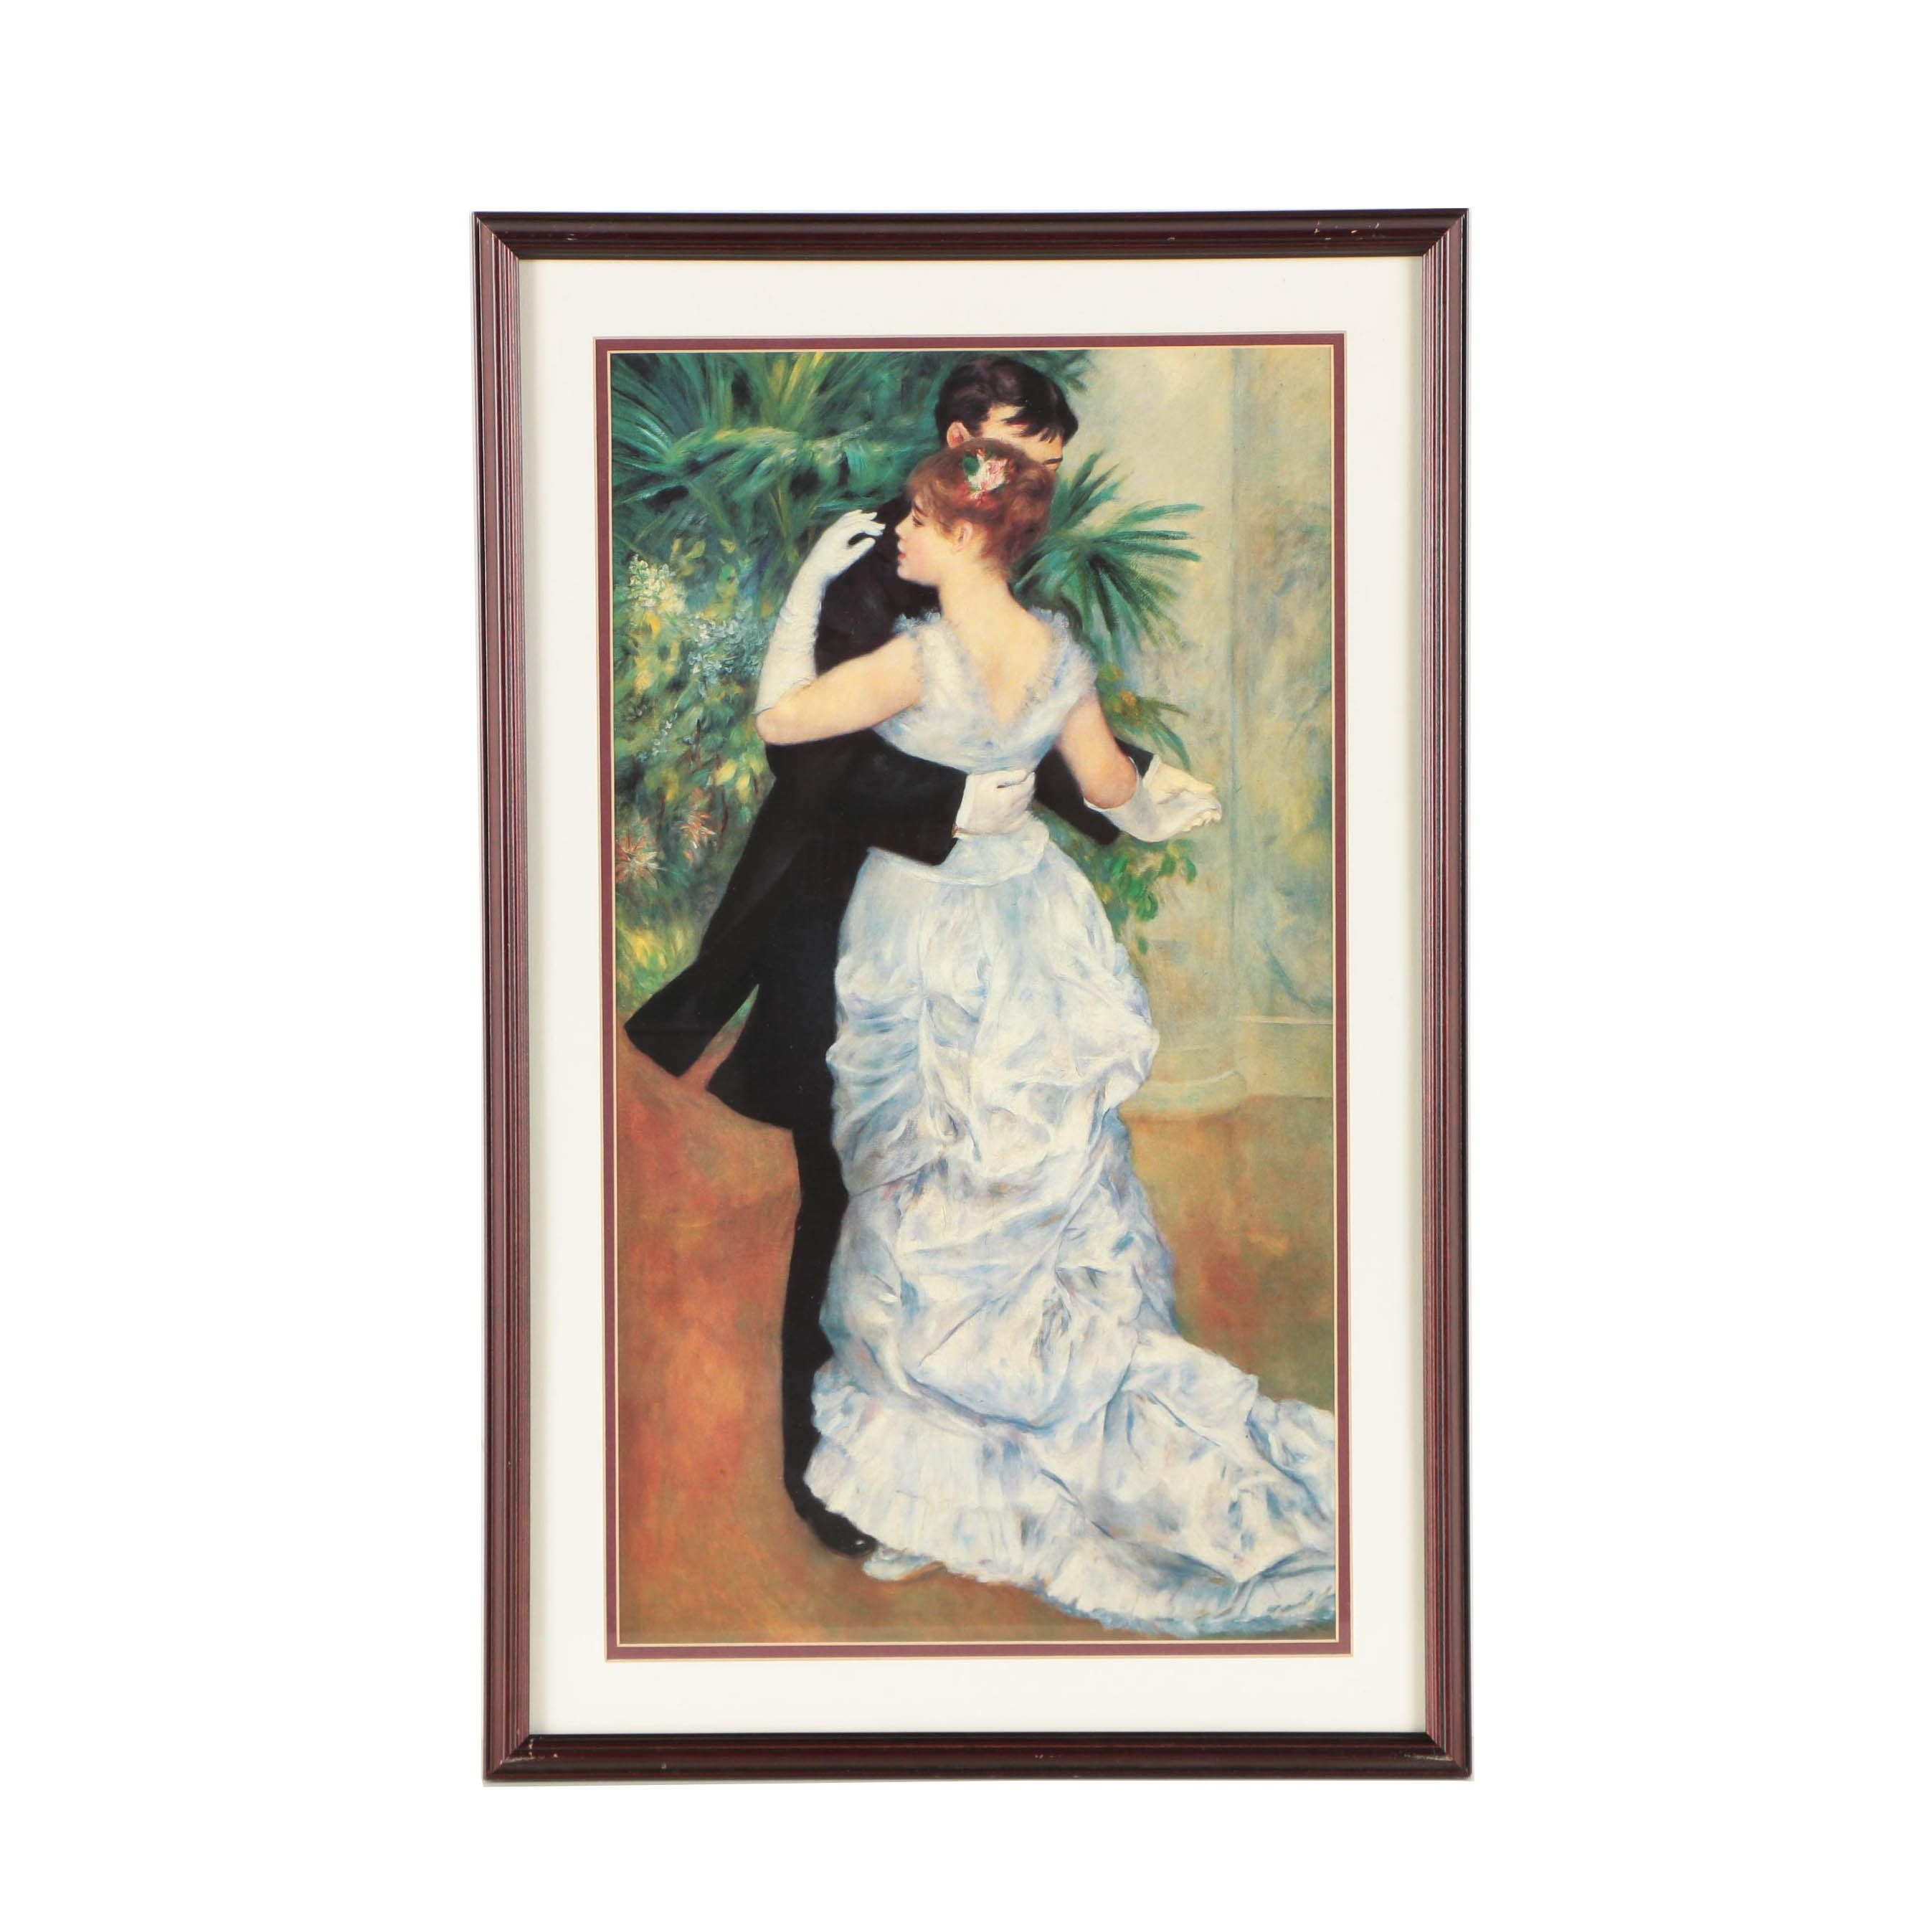 Offset Lithographic Reproduction Print After Pierre-Auguste Renoir